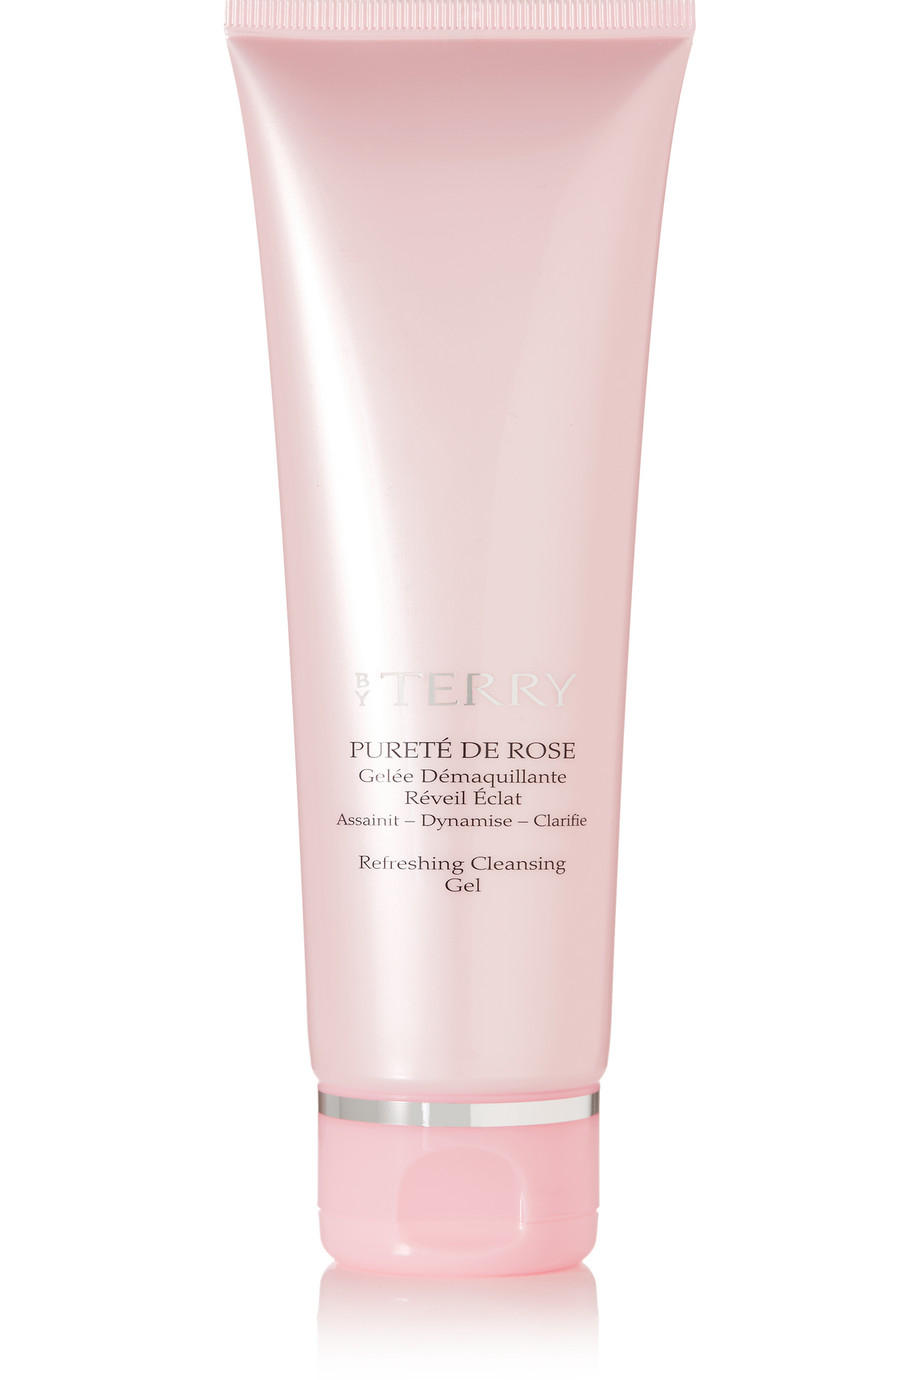 Purete De Rose - Refreshing Cleansing Gel, 125ml, by By Terry